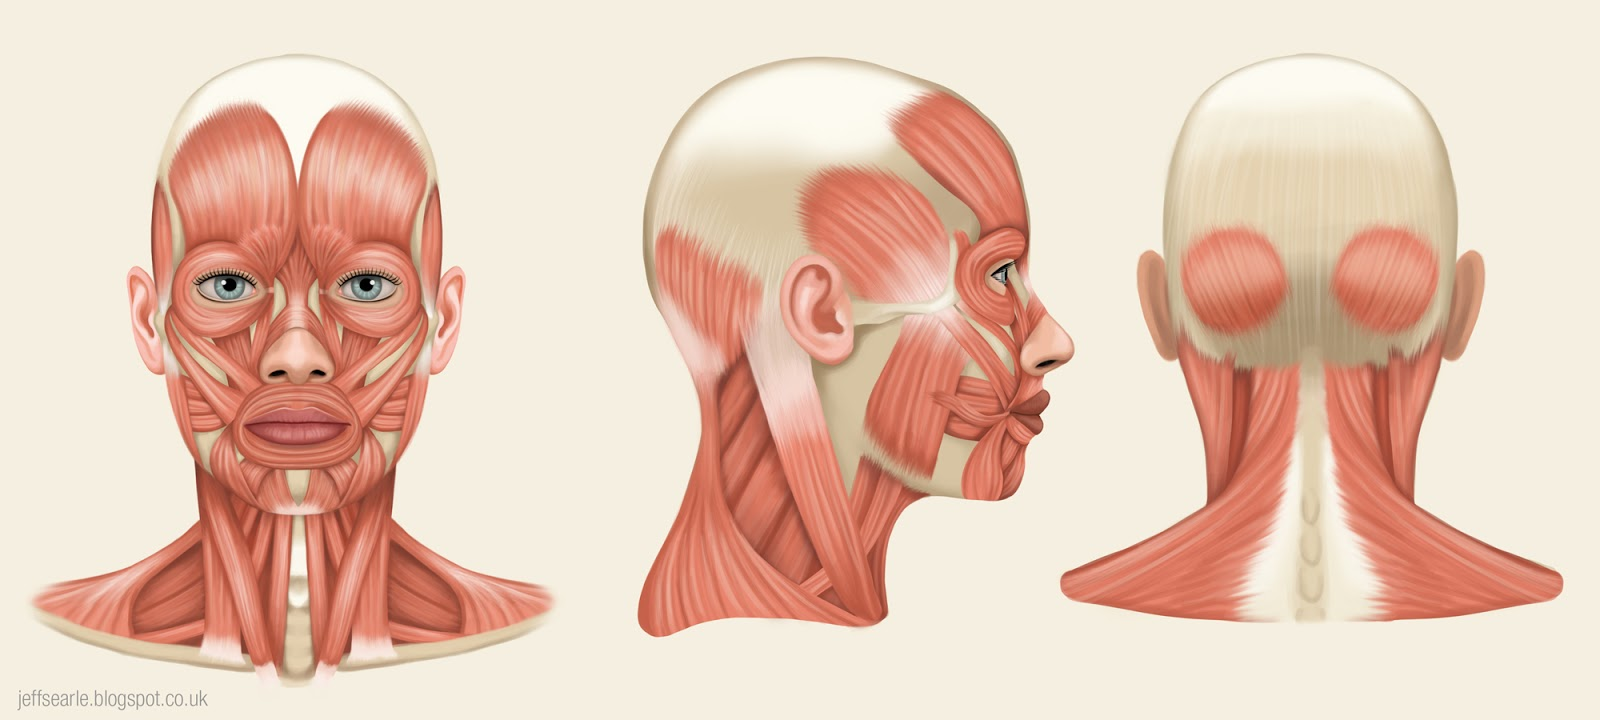 Amazing Muscles Of The Face Image Collection - Human Anatomy Images ...